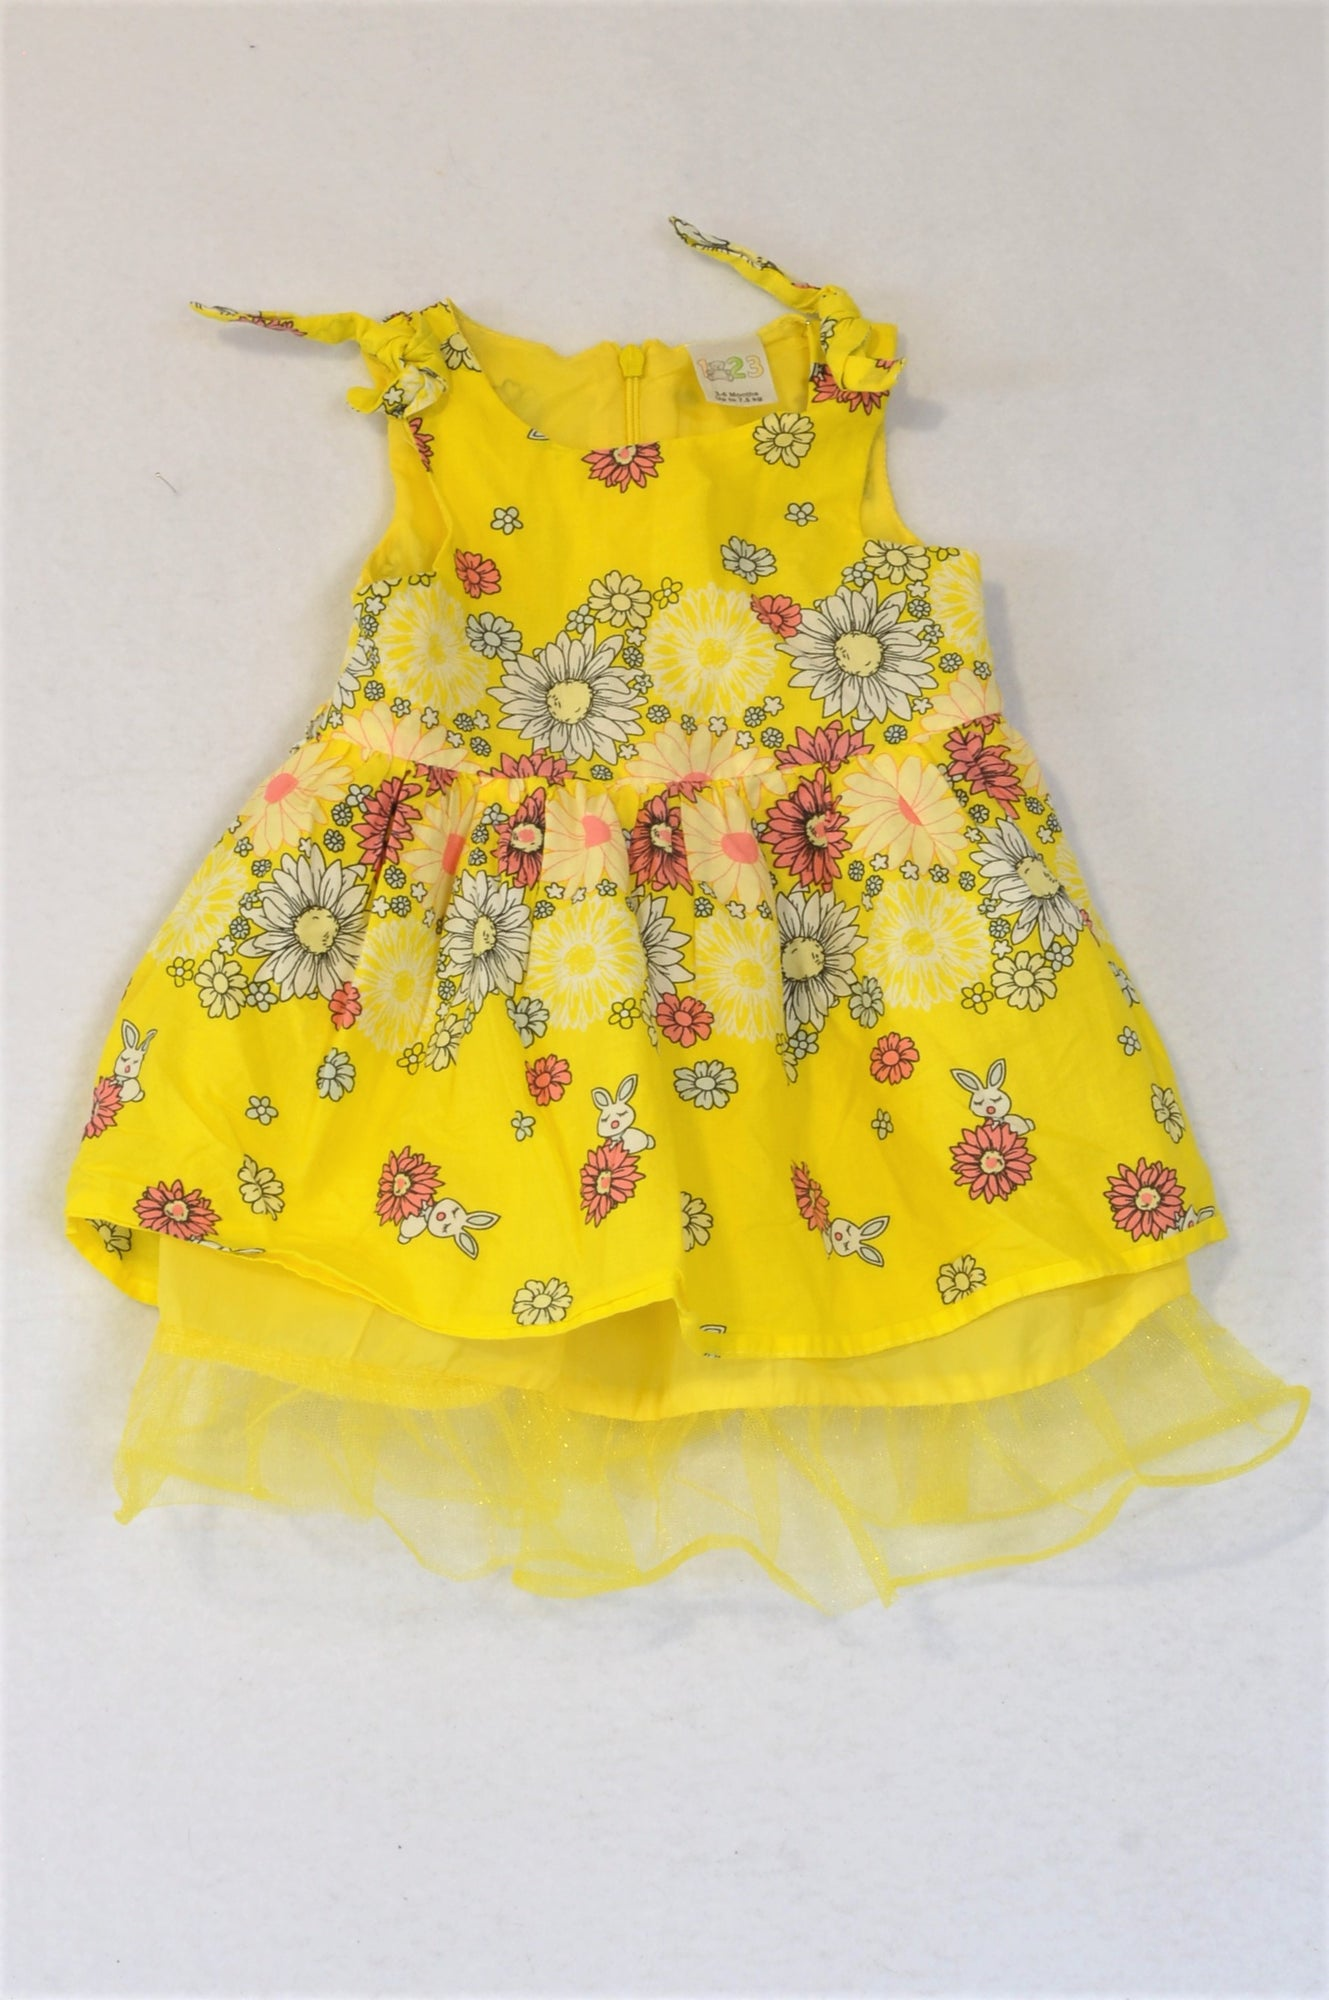 Edgars Bright Yellow Floral Dress Girls 3-6 months